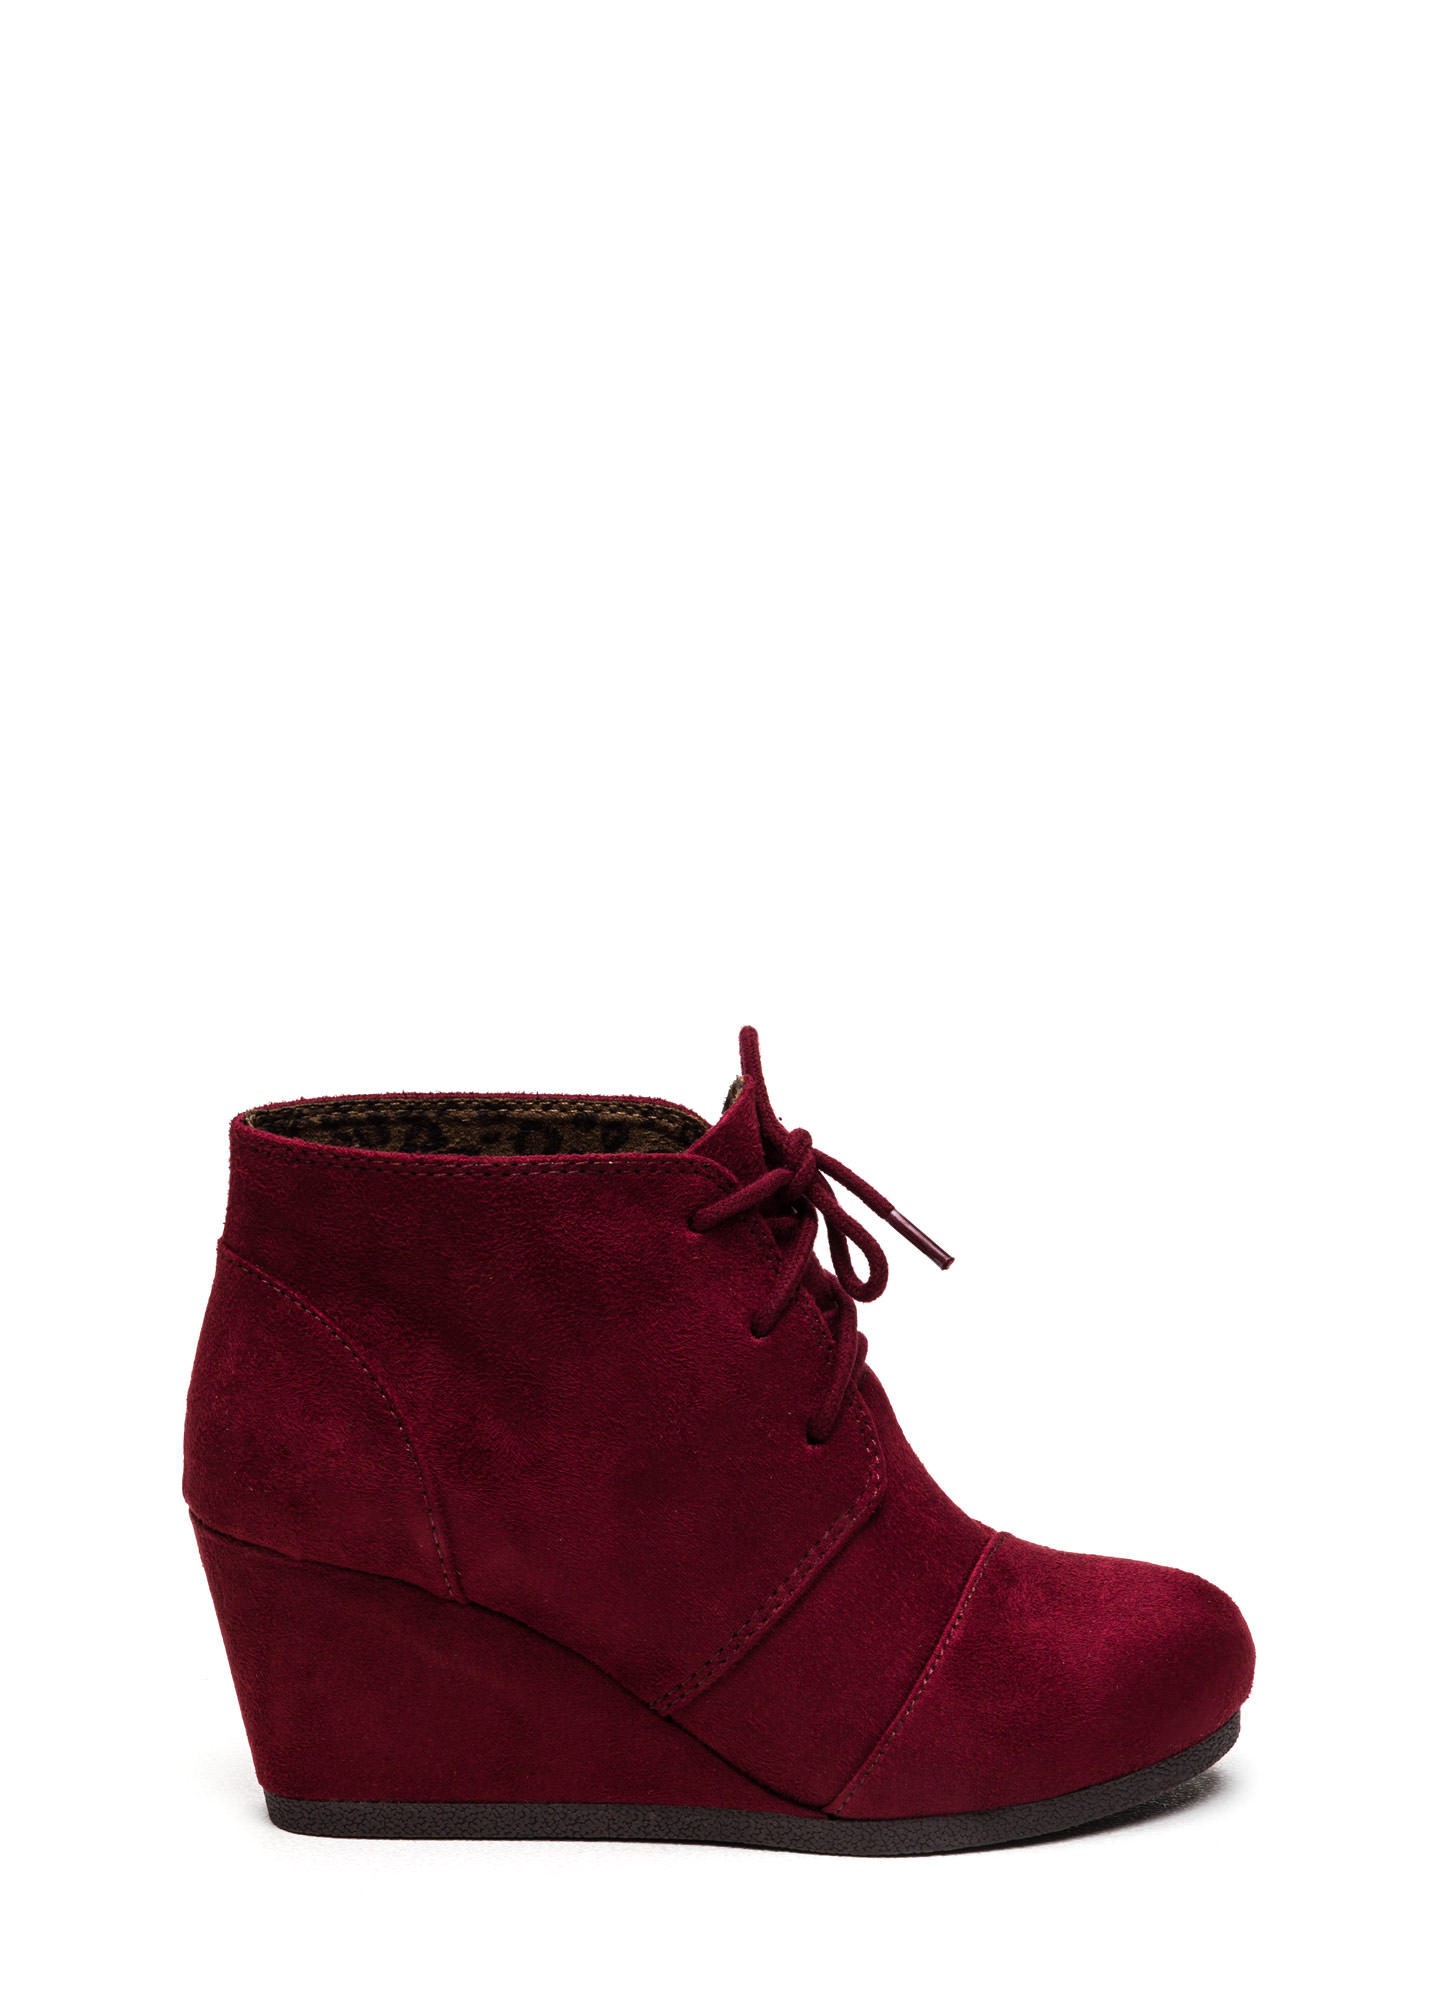 Panel Accent Wedge Booties BURGUNDY